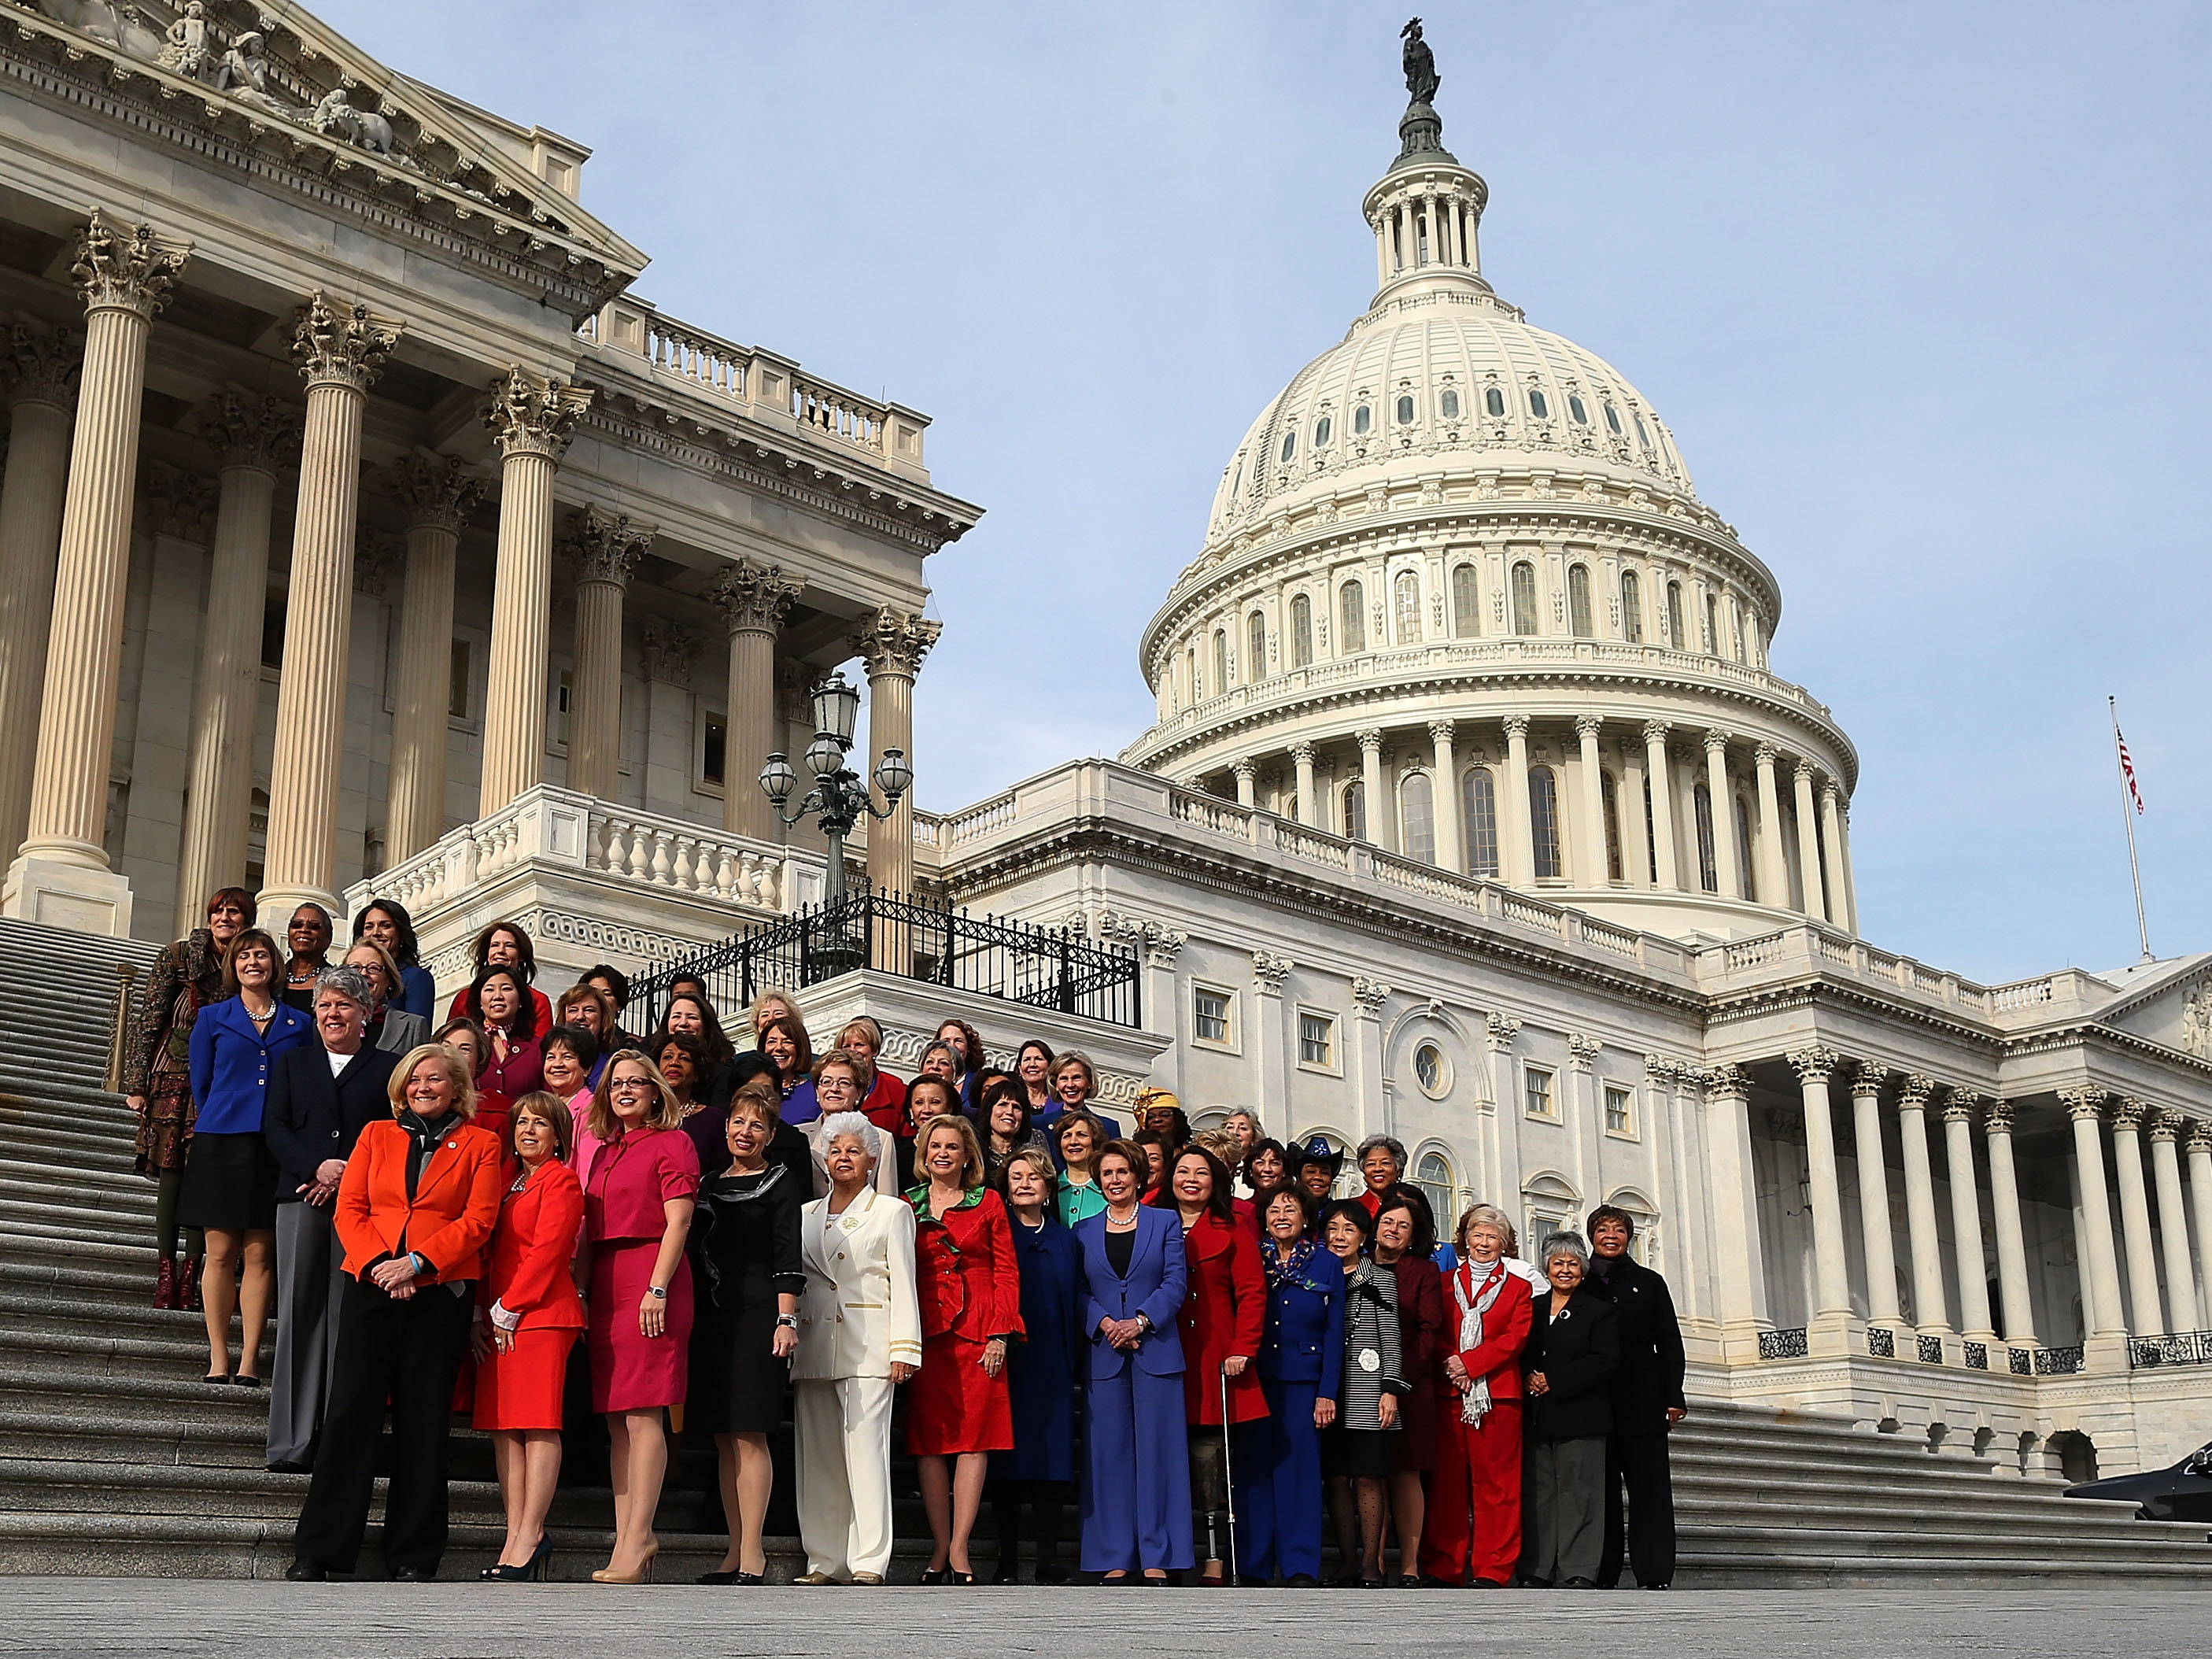 WASHINGTON, DC - JANUARY 03: Democratic Leader Nancy Pelosi (D-CA) (C), stands with the Democratic women of the House to highlight the historic diversity of the House Democratic Caucus, on January 3, 2013 in Washington, DC. The new 113th Congress will be sworn in today.  (Photo by Mark Wilson/Getty Images)